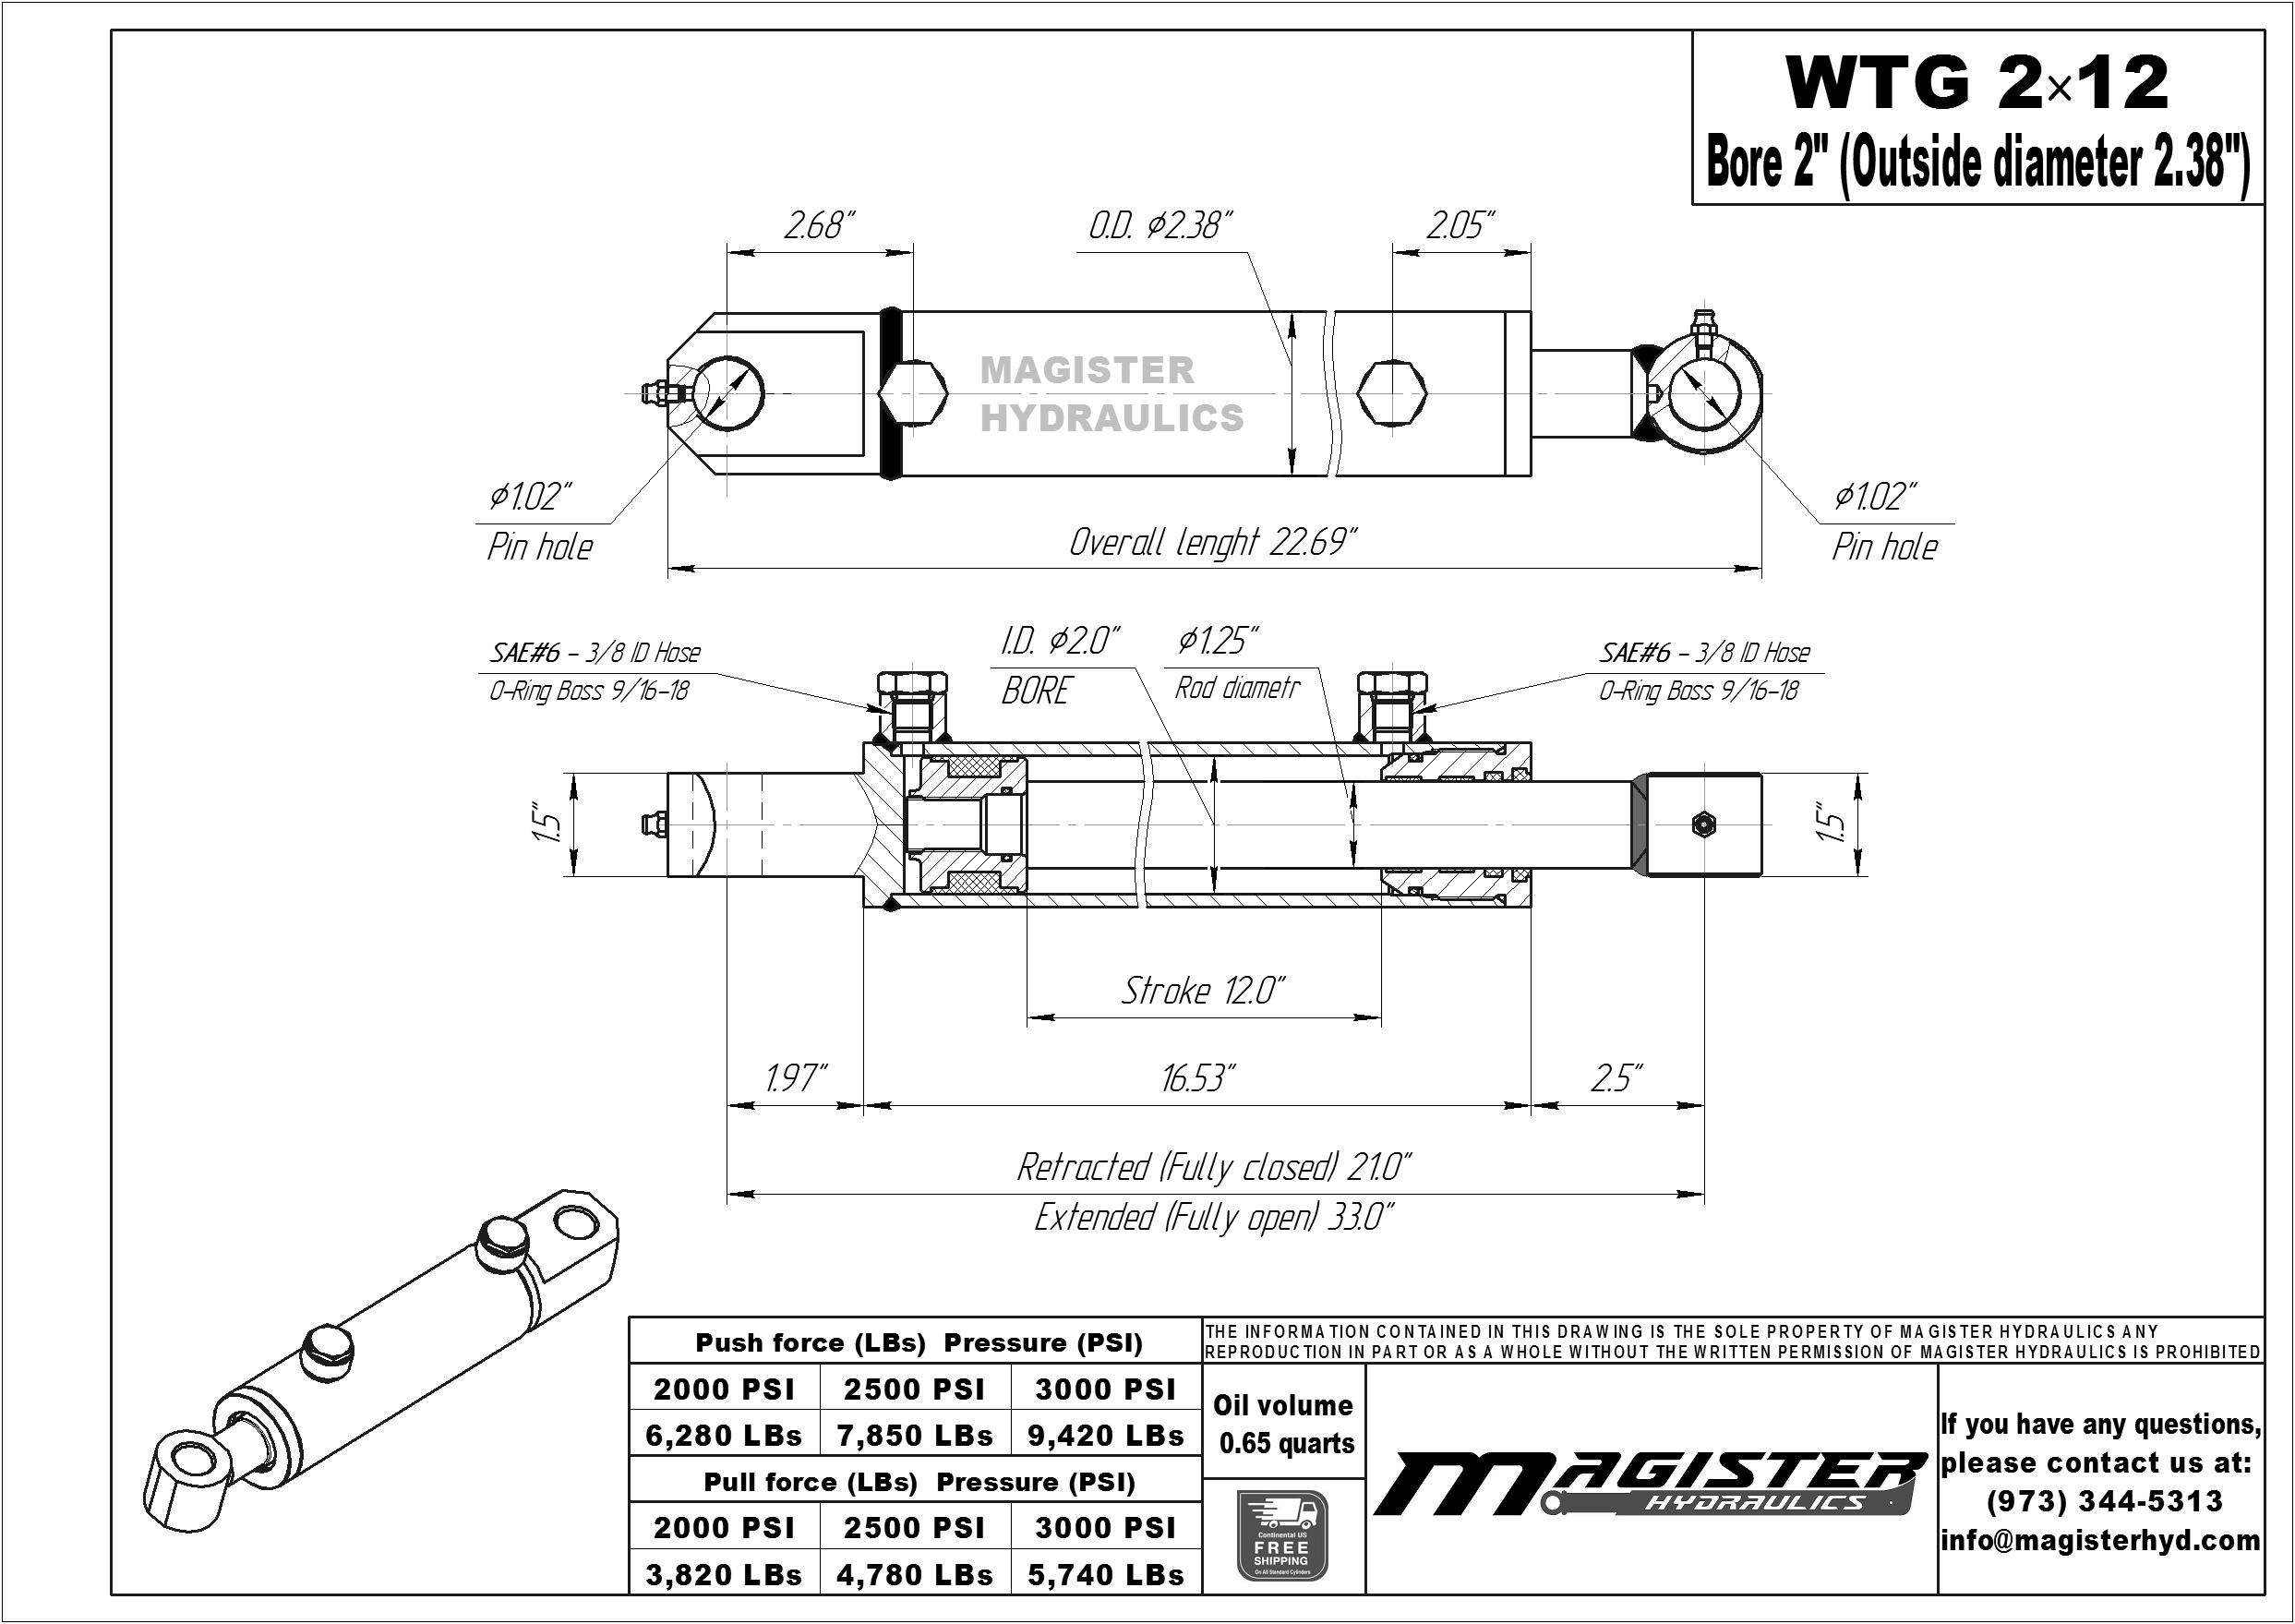 2 bore x 12 stroke hydraulic cylinder, welded tang double acting cylinder | Magister Hydraulics